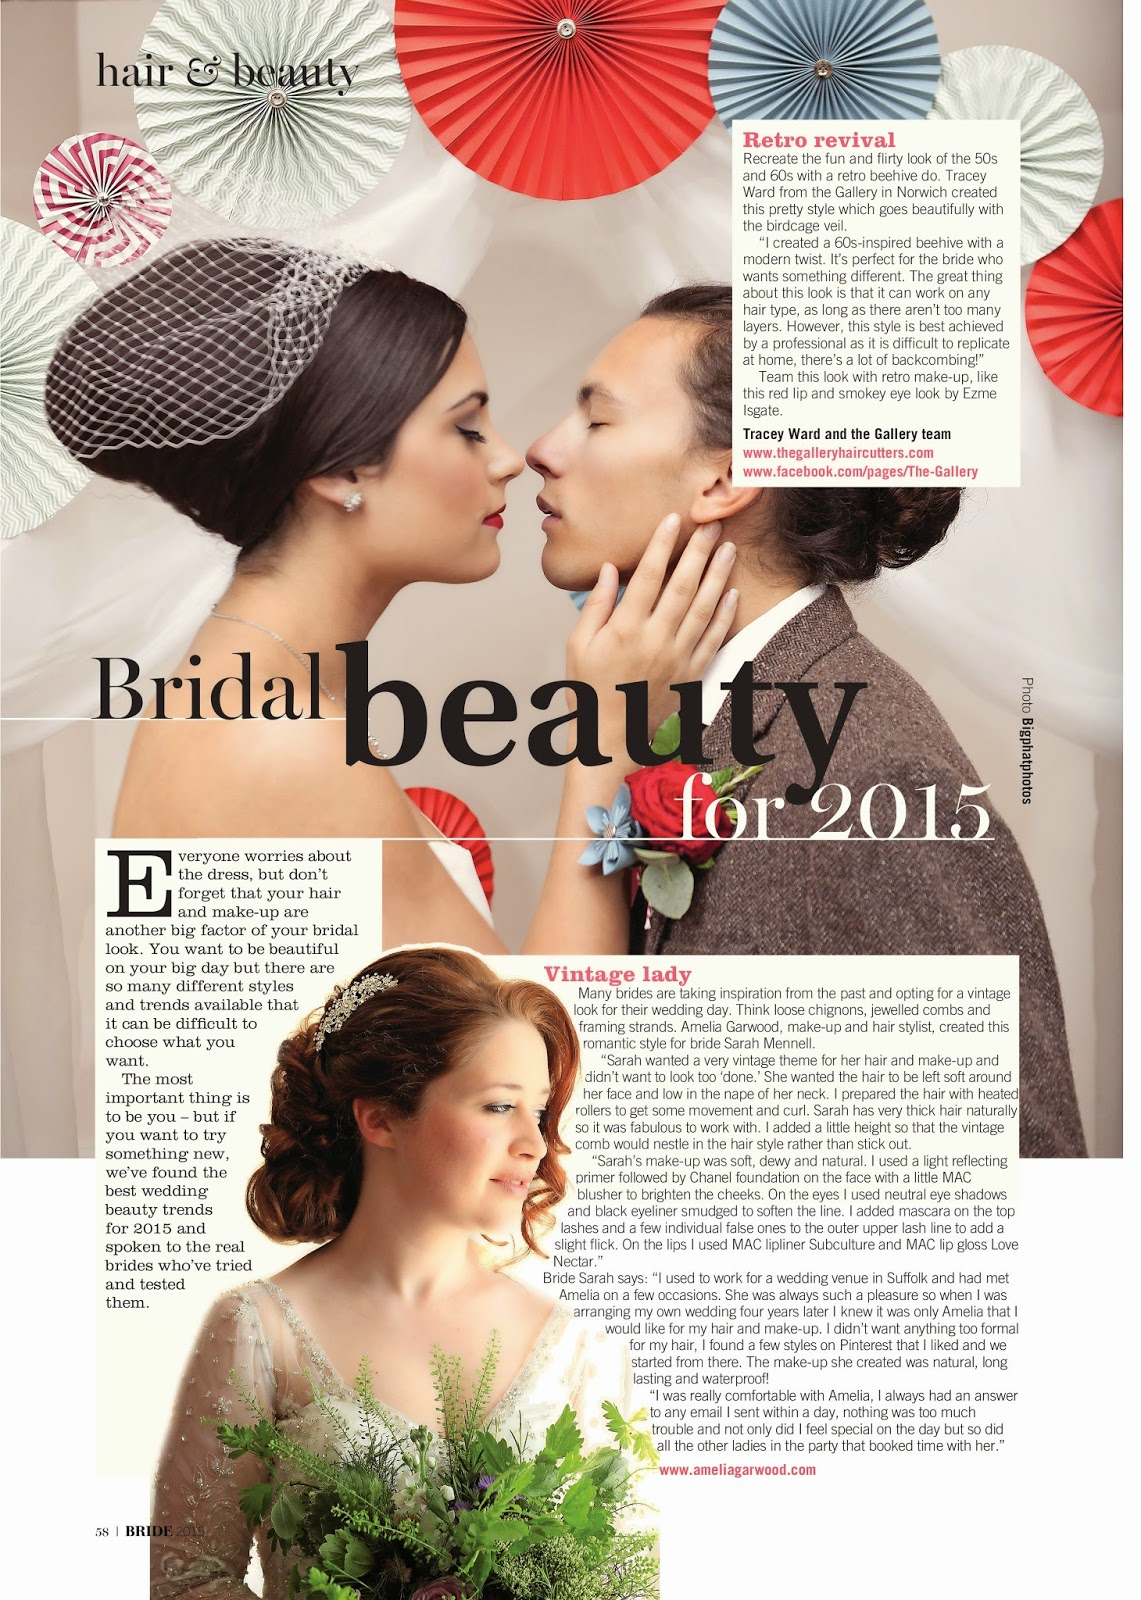 Bridal beauty feature, Bride magazine